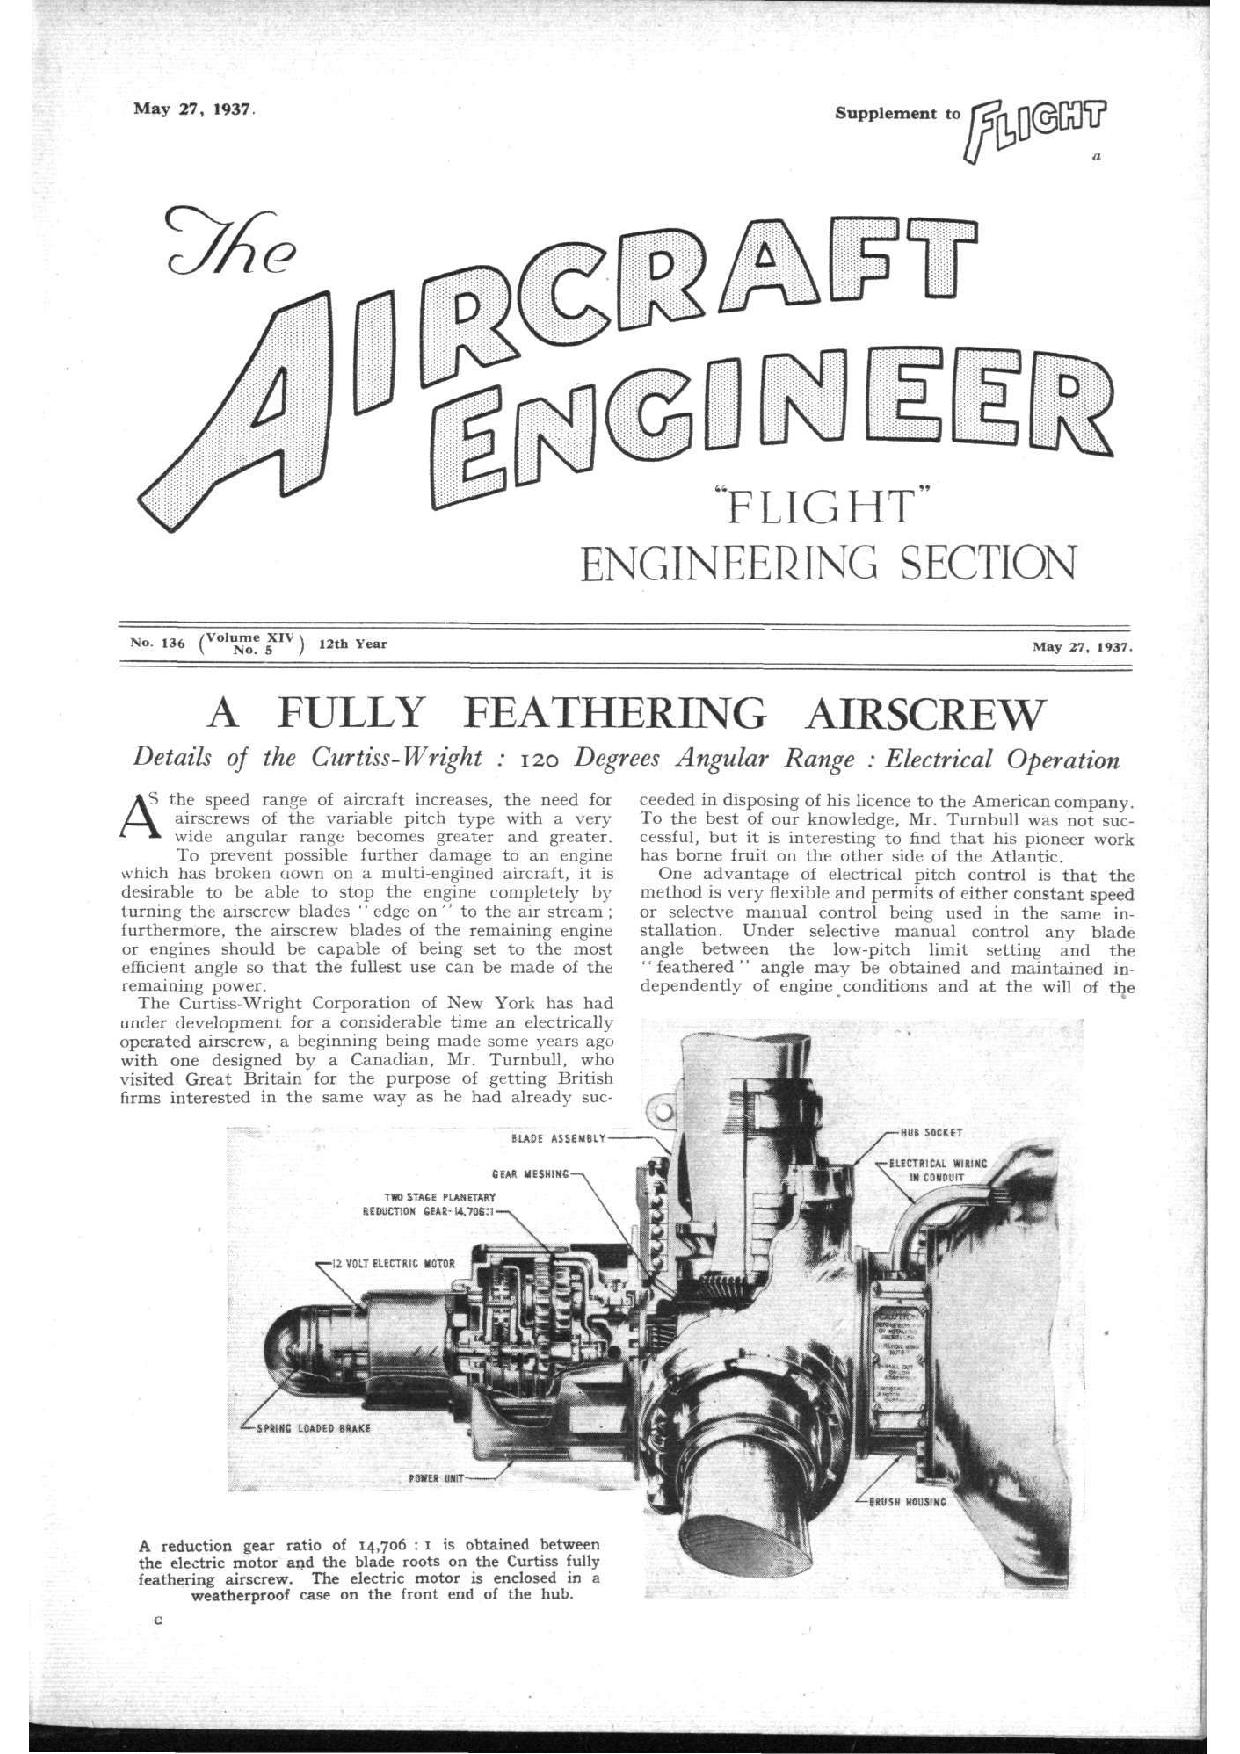 Fully feathering airscrew-1937-1399.jpg